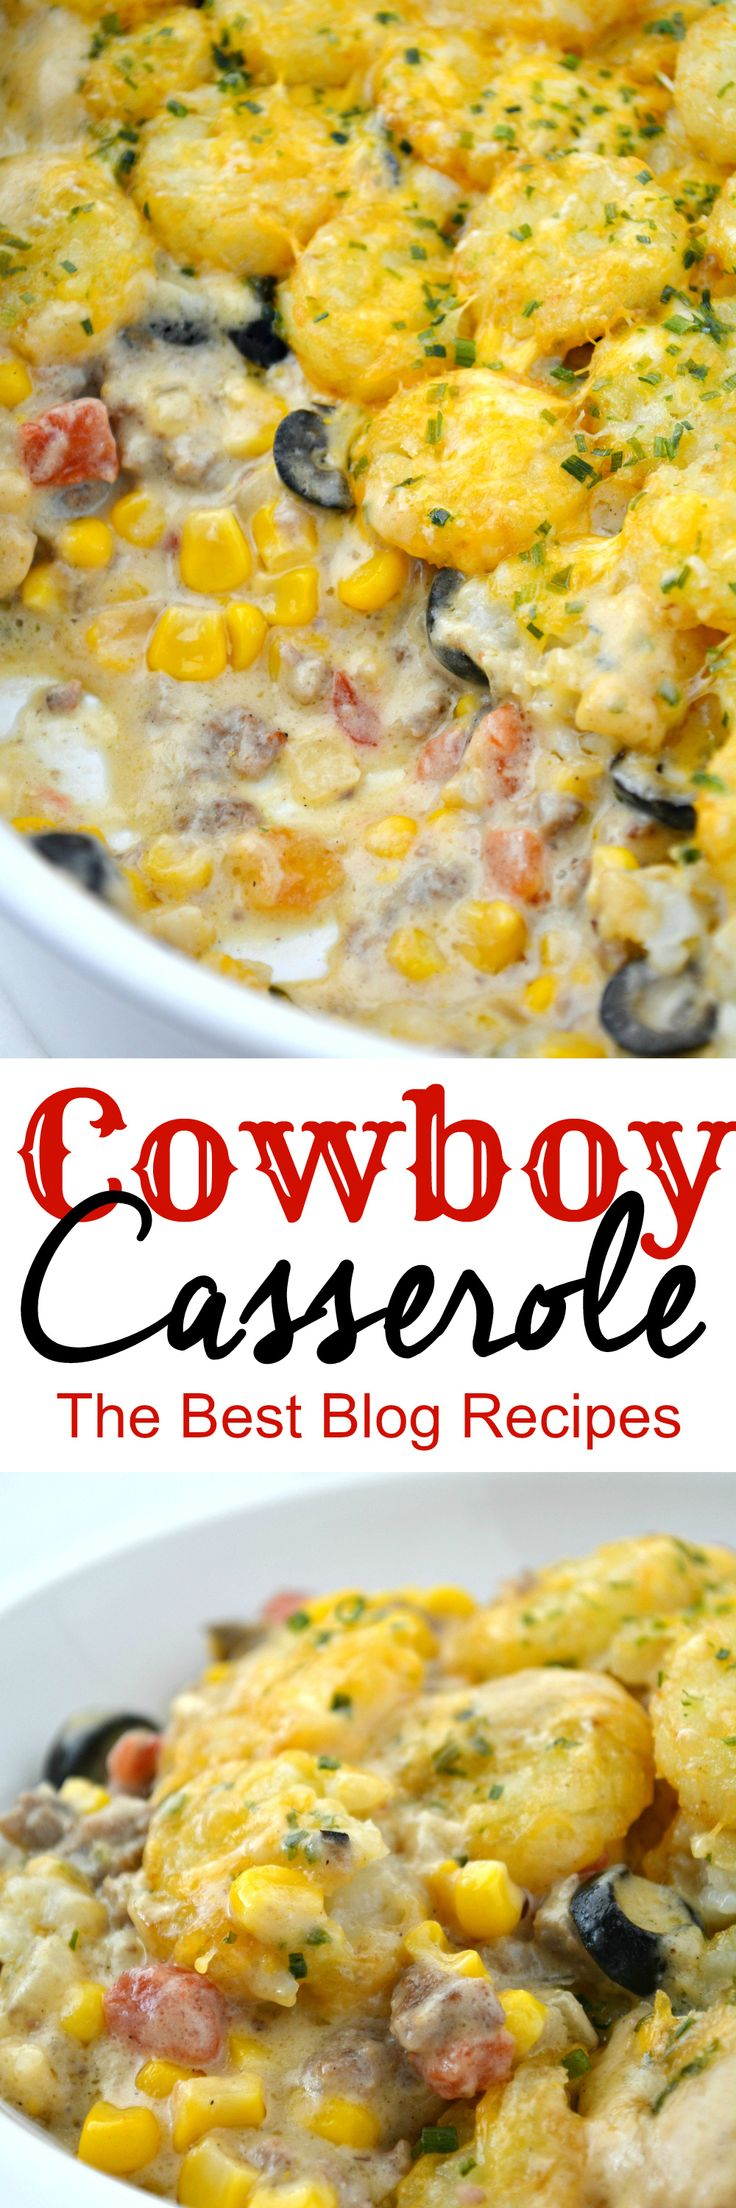 Cowboy Casserole | The Best Blog Recipes